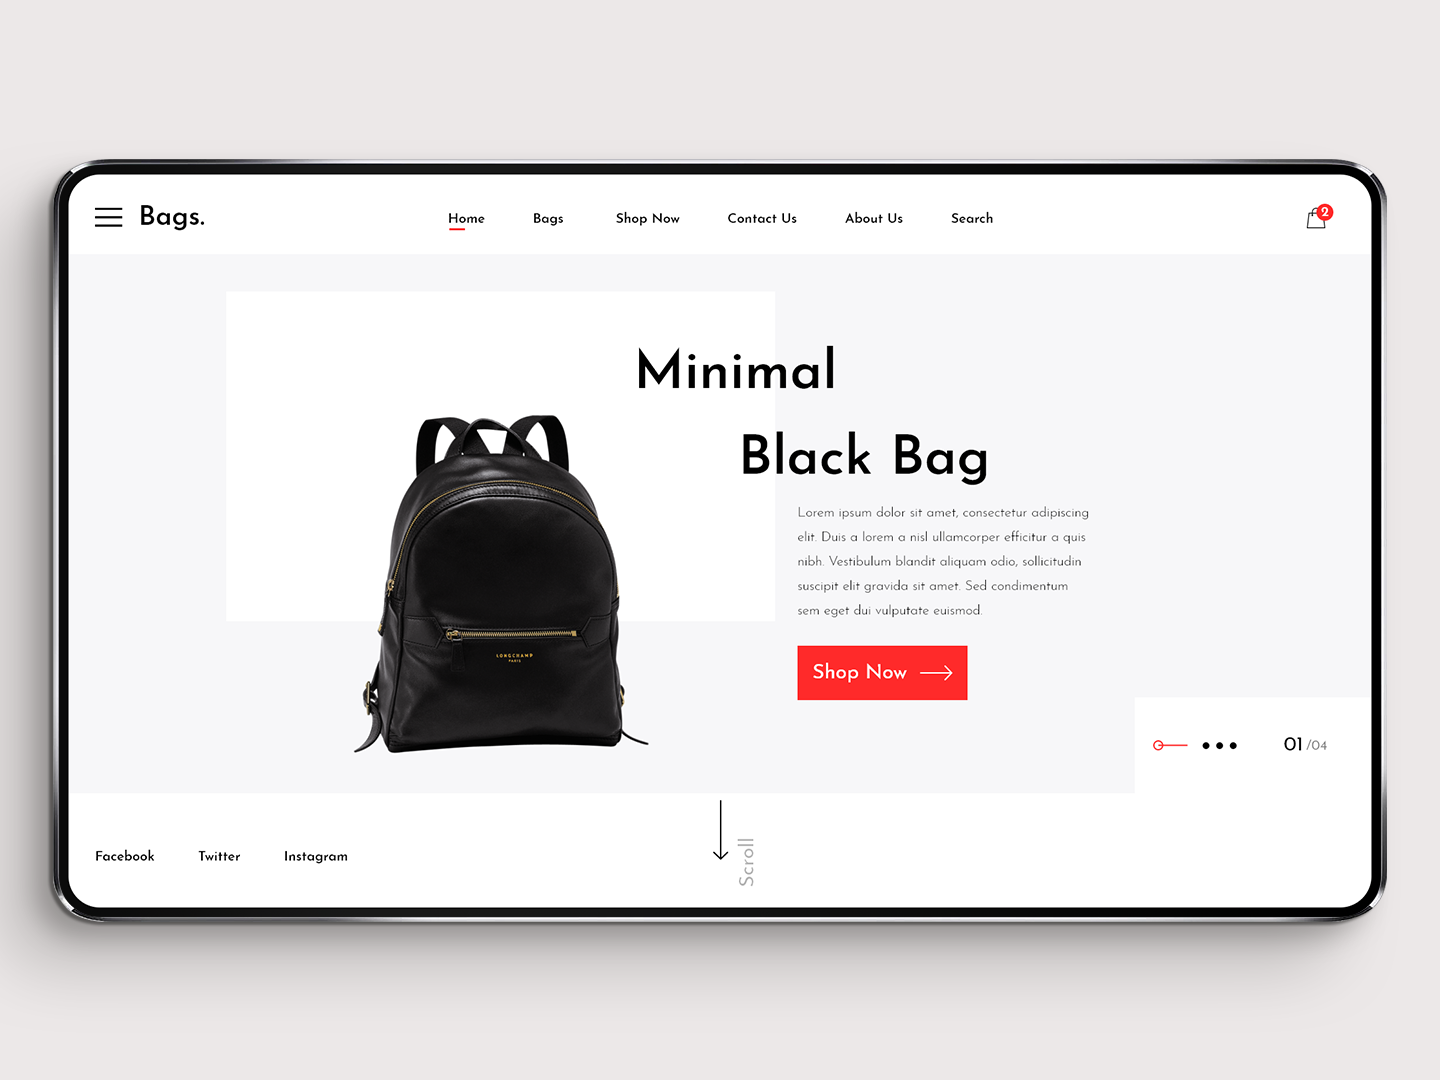 Minimal Bag Landing page design typography cards scroll social clean website web user experience user interface slider ecommerce shopping black bag hero header landing page bag ux ui minimal